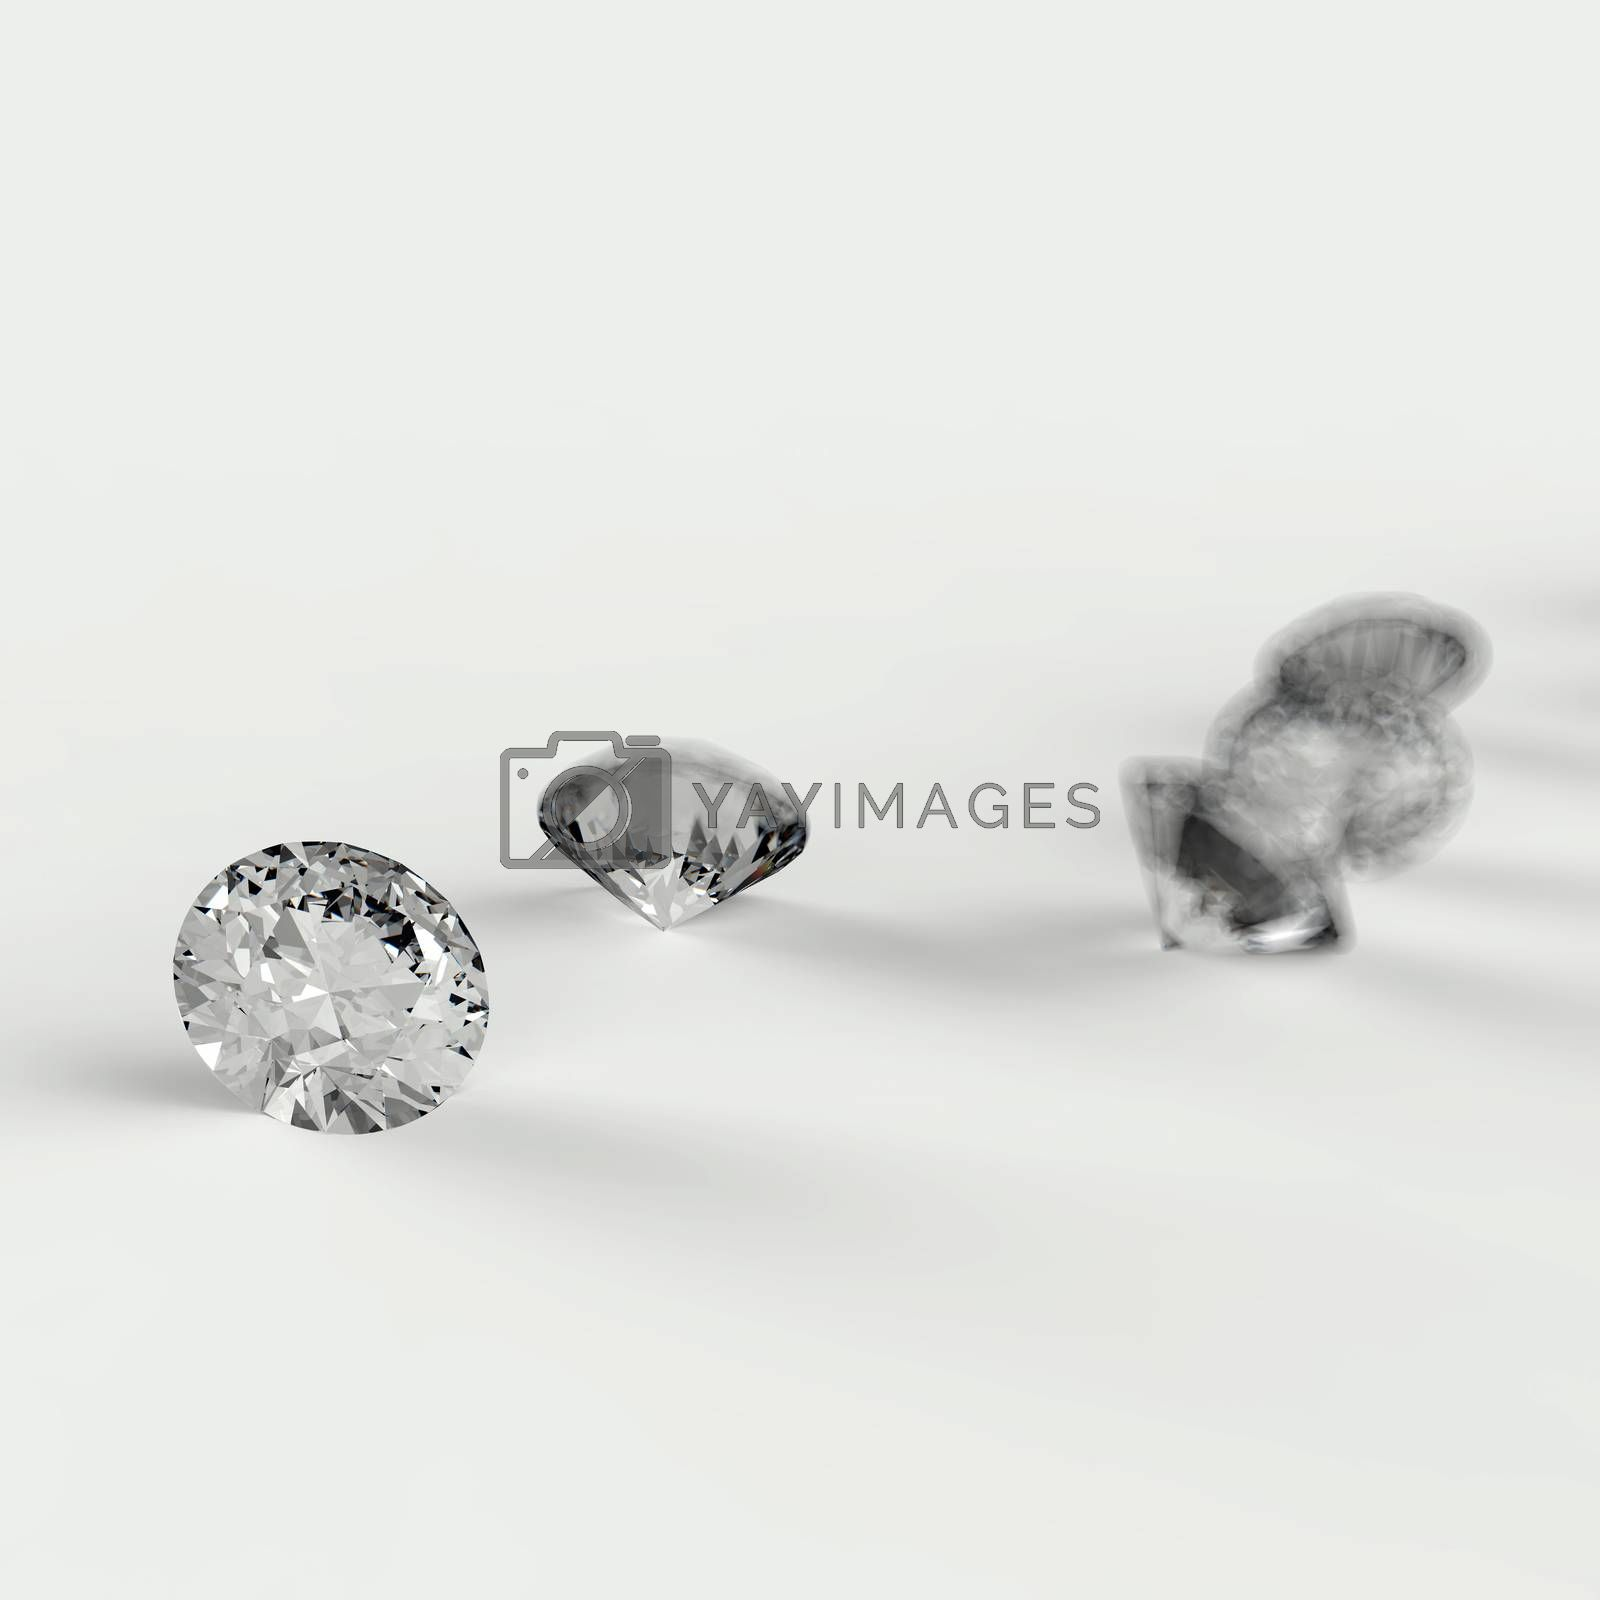 Royalty free image of Diamonds 3d in composition by everythingpossible